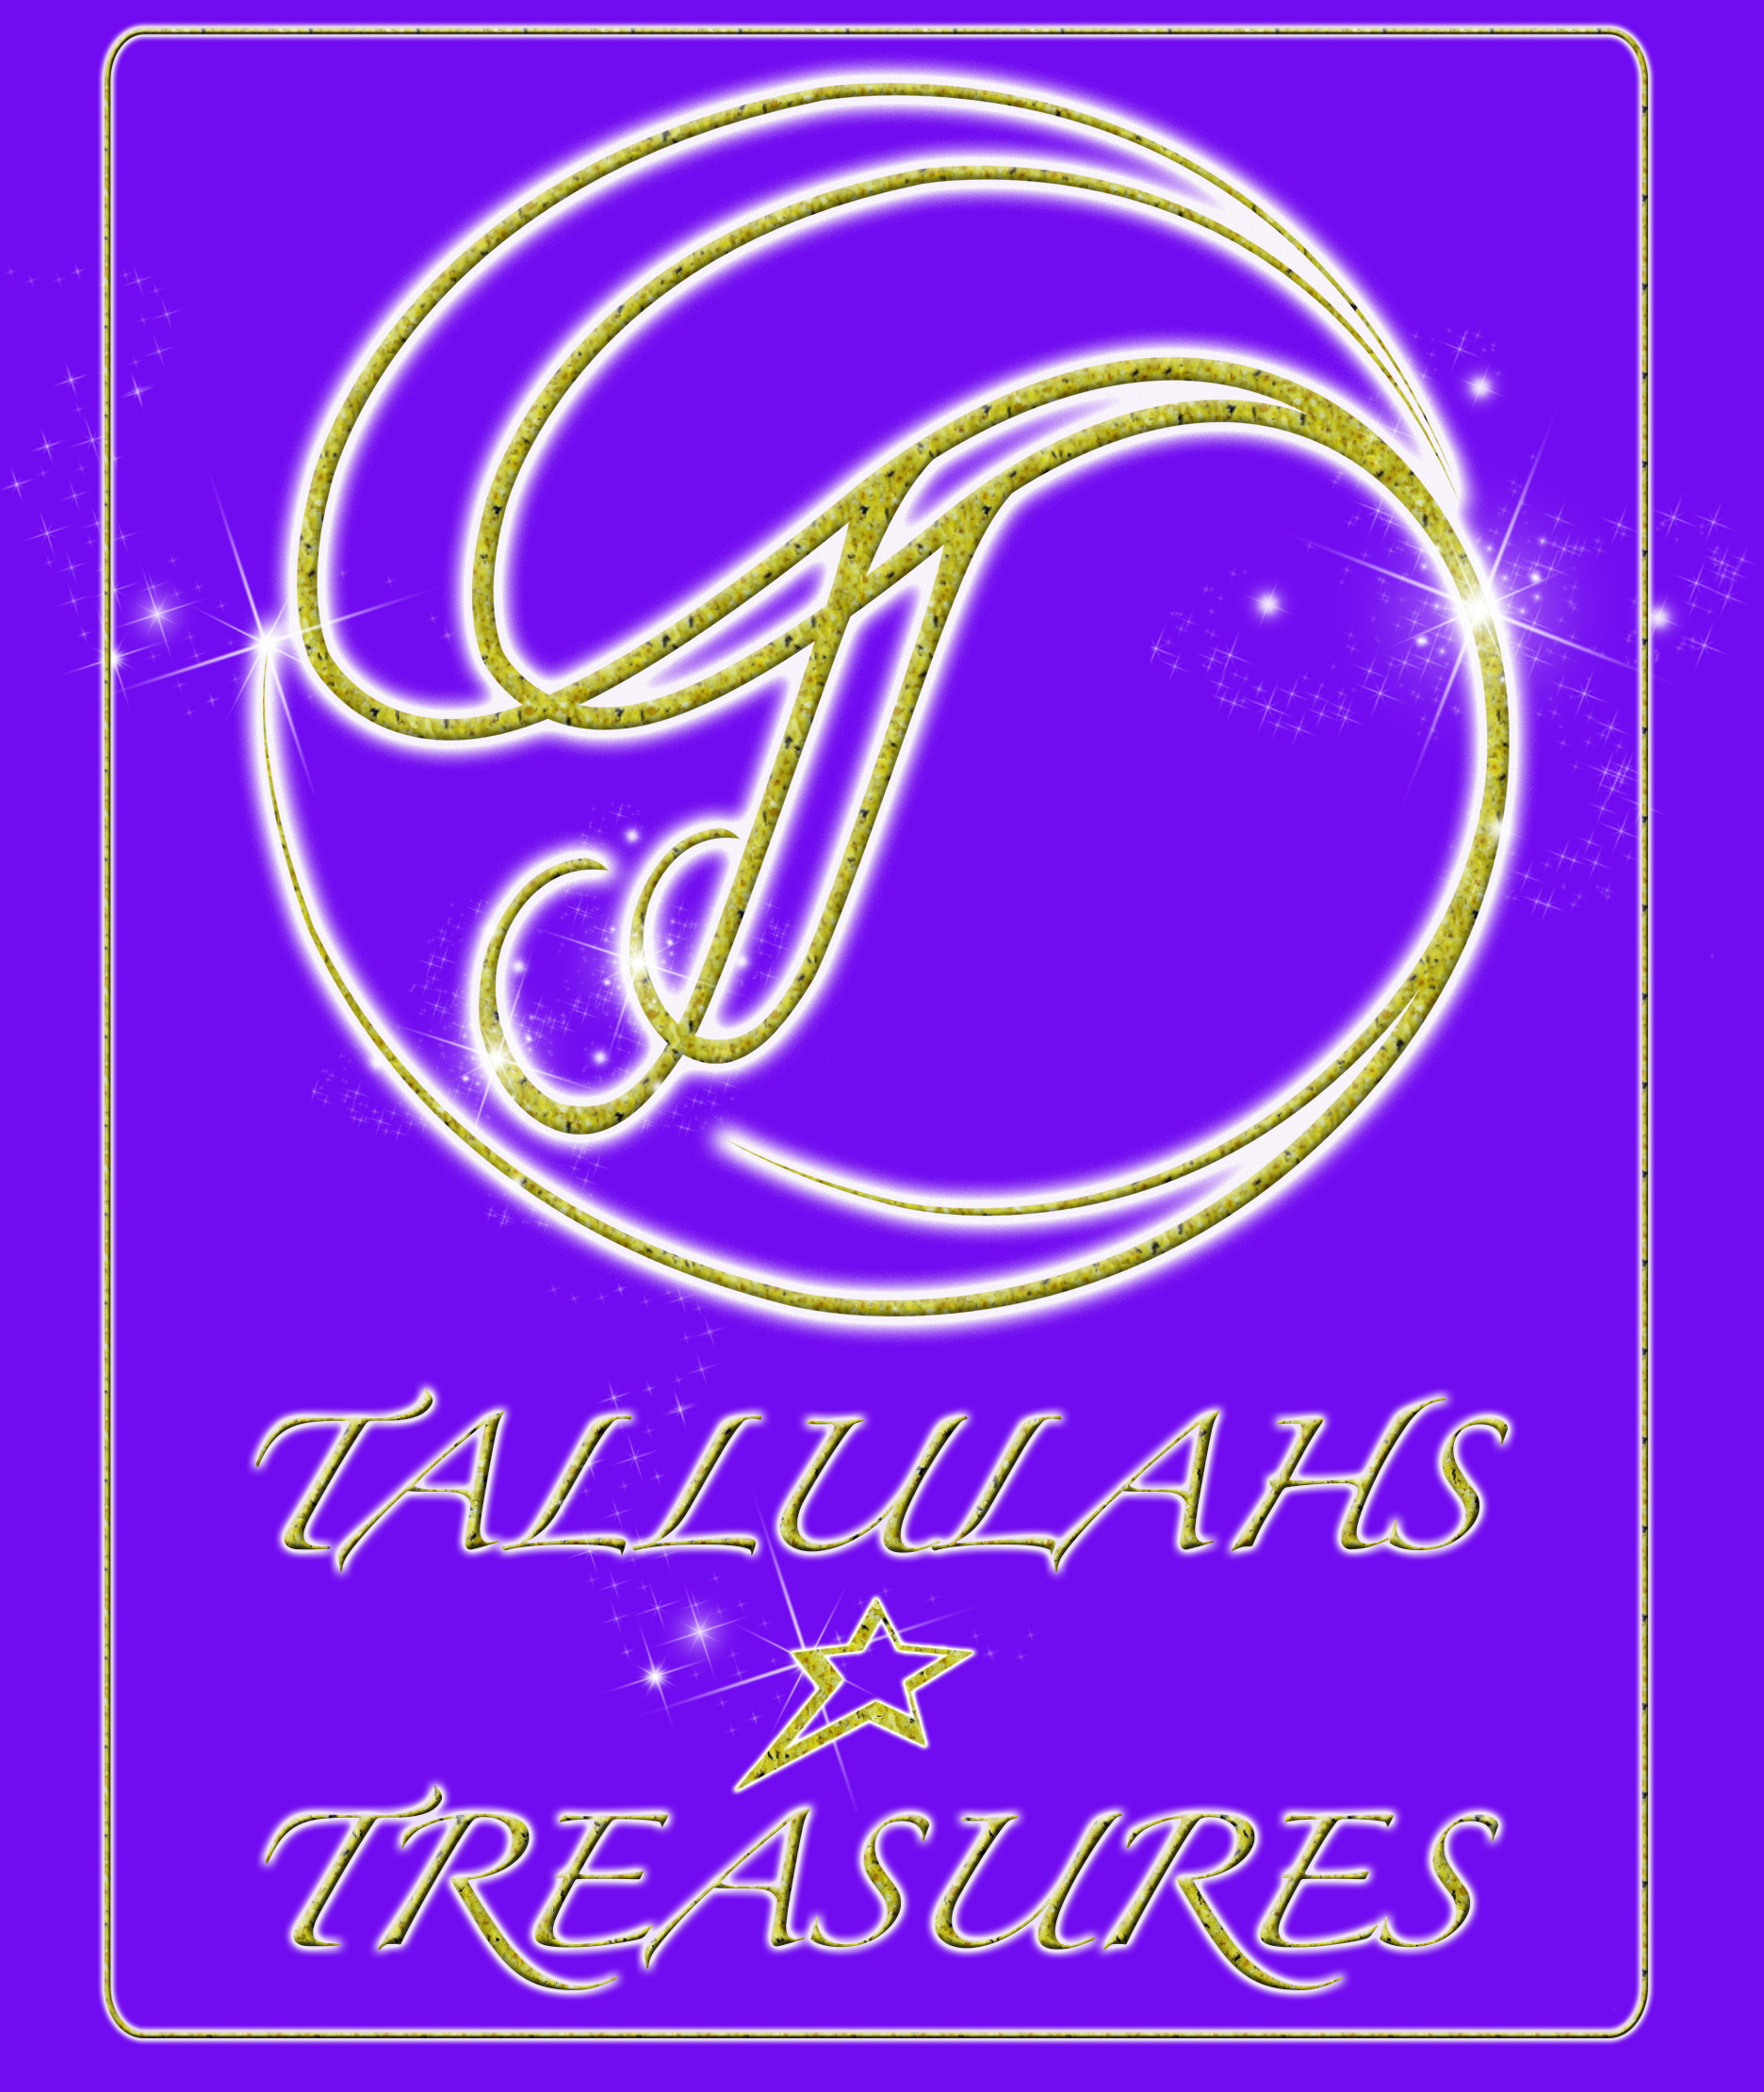 Meet Melody Old of Tallulah's Treasures | Samui Times